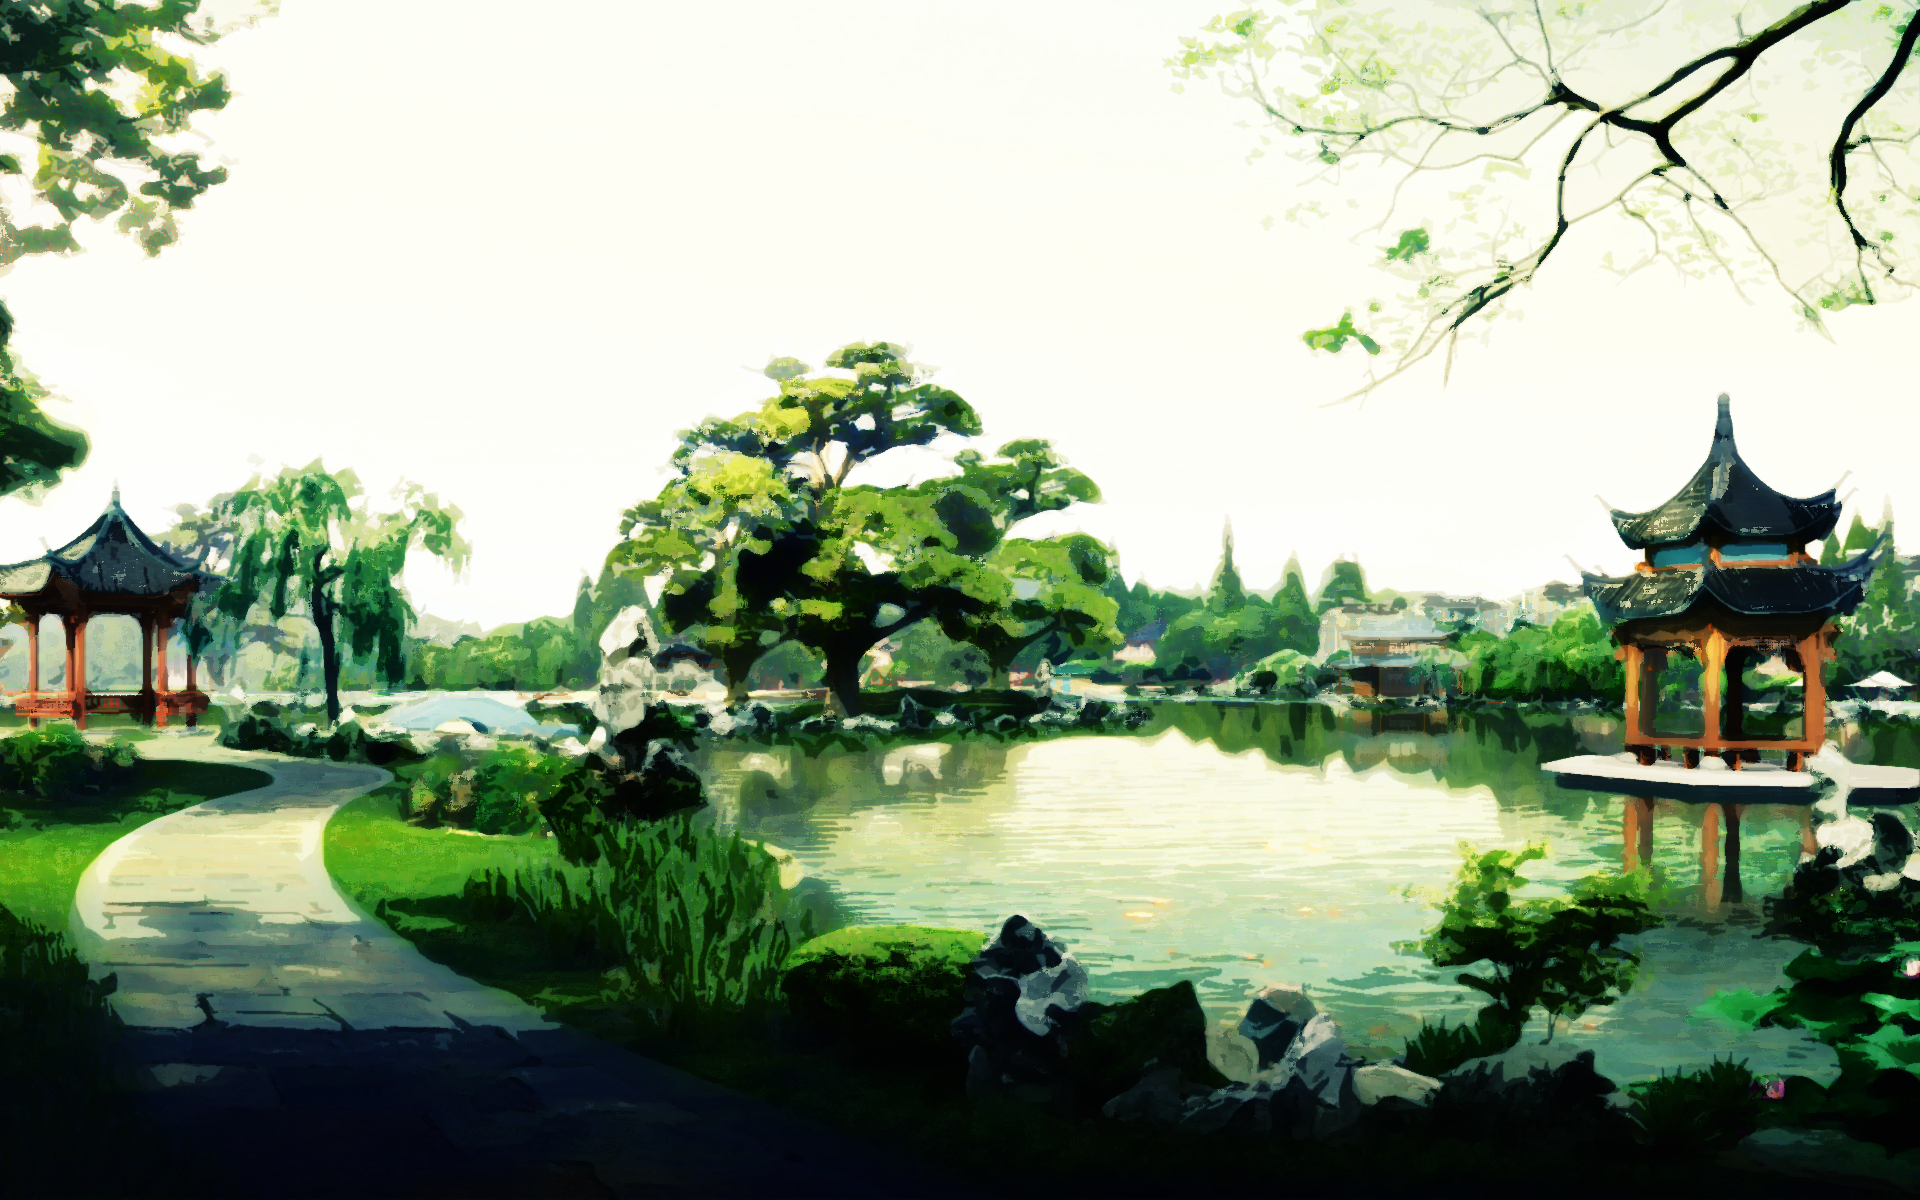 Tranquil Gardens By Reveriescanter On Deviantart